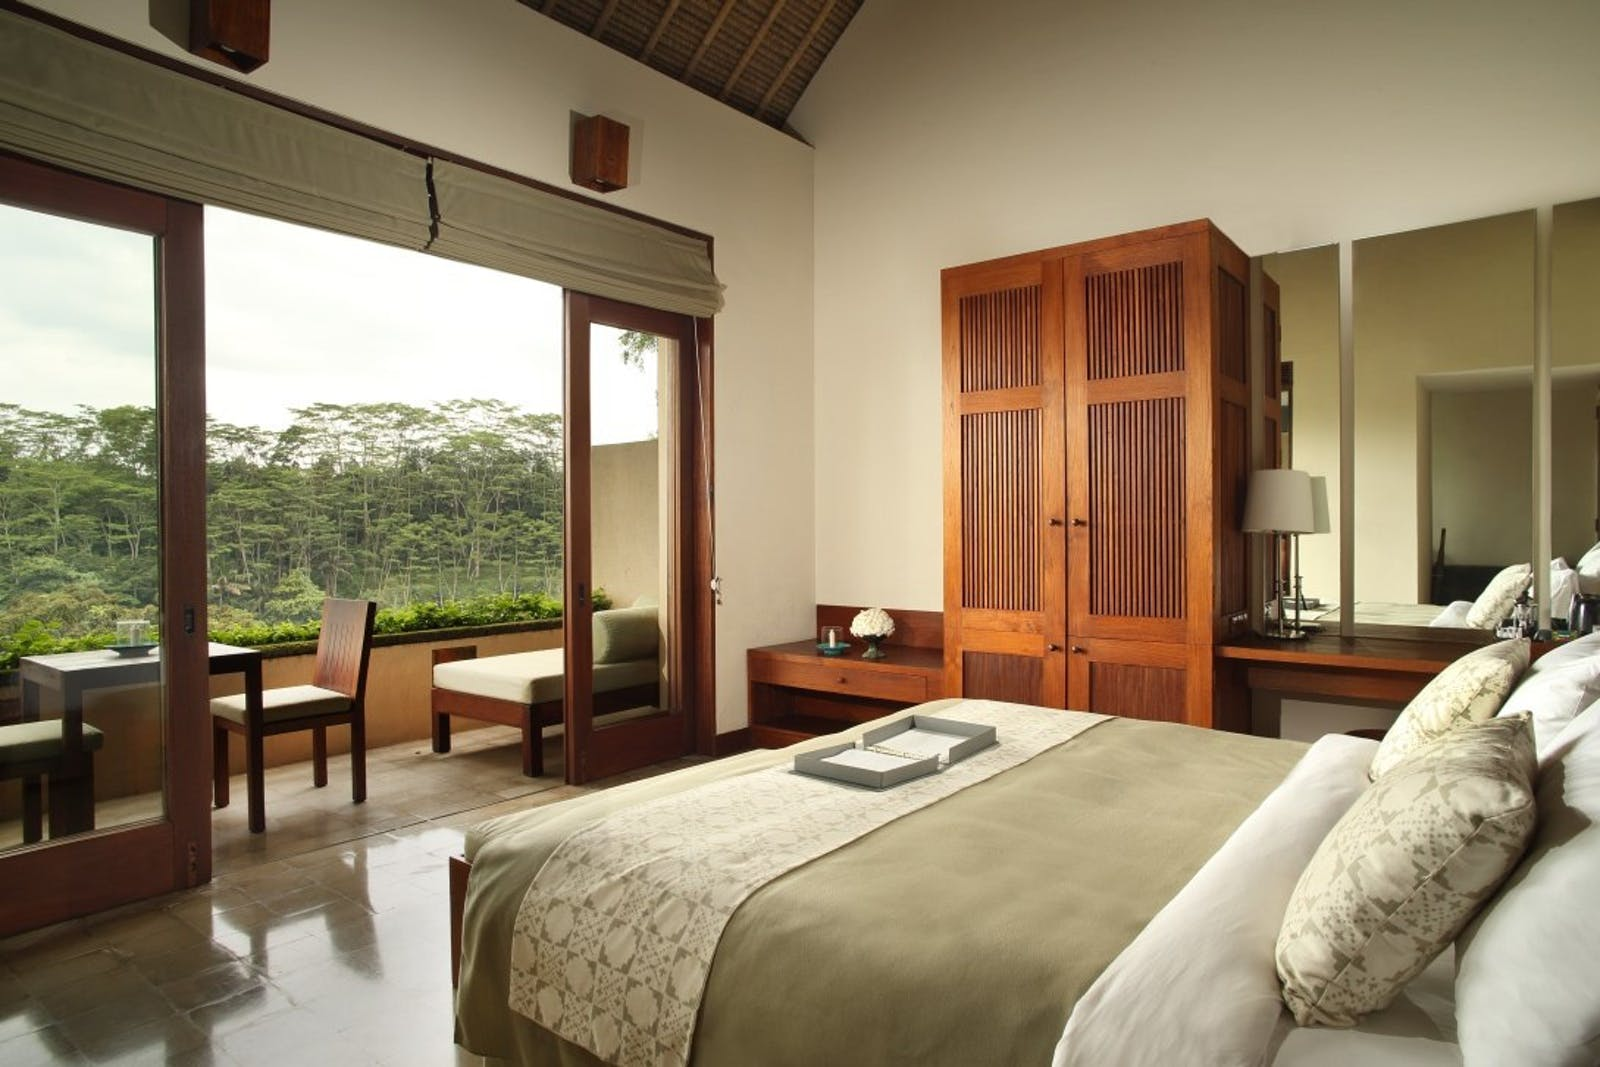 Superior Room at Alila Ubud, Bali